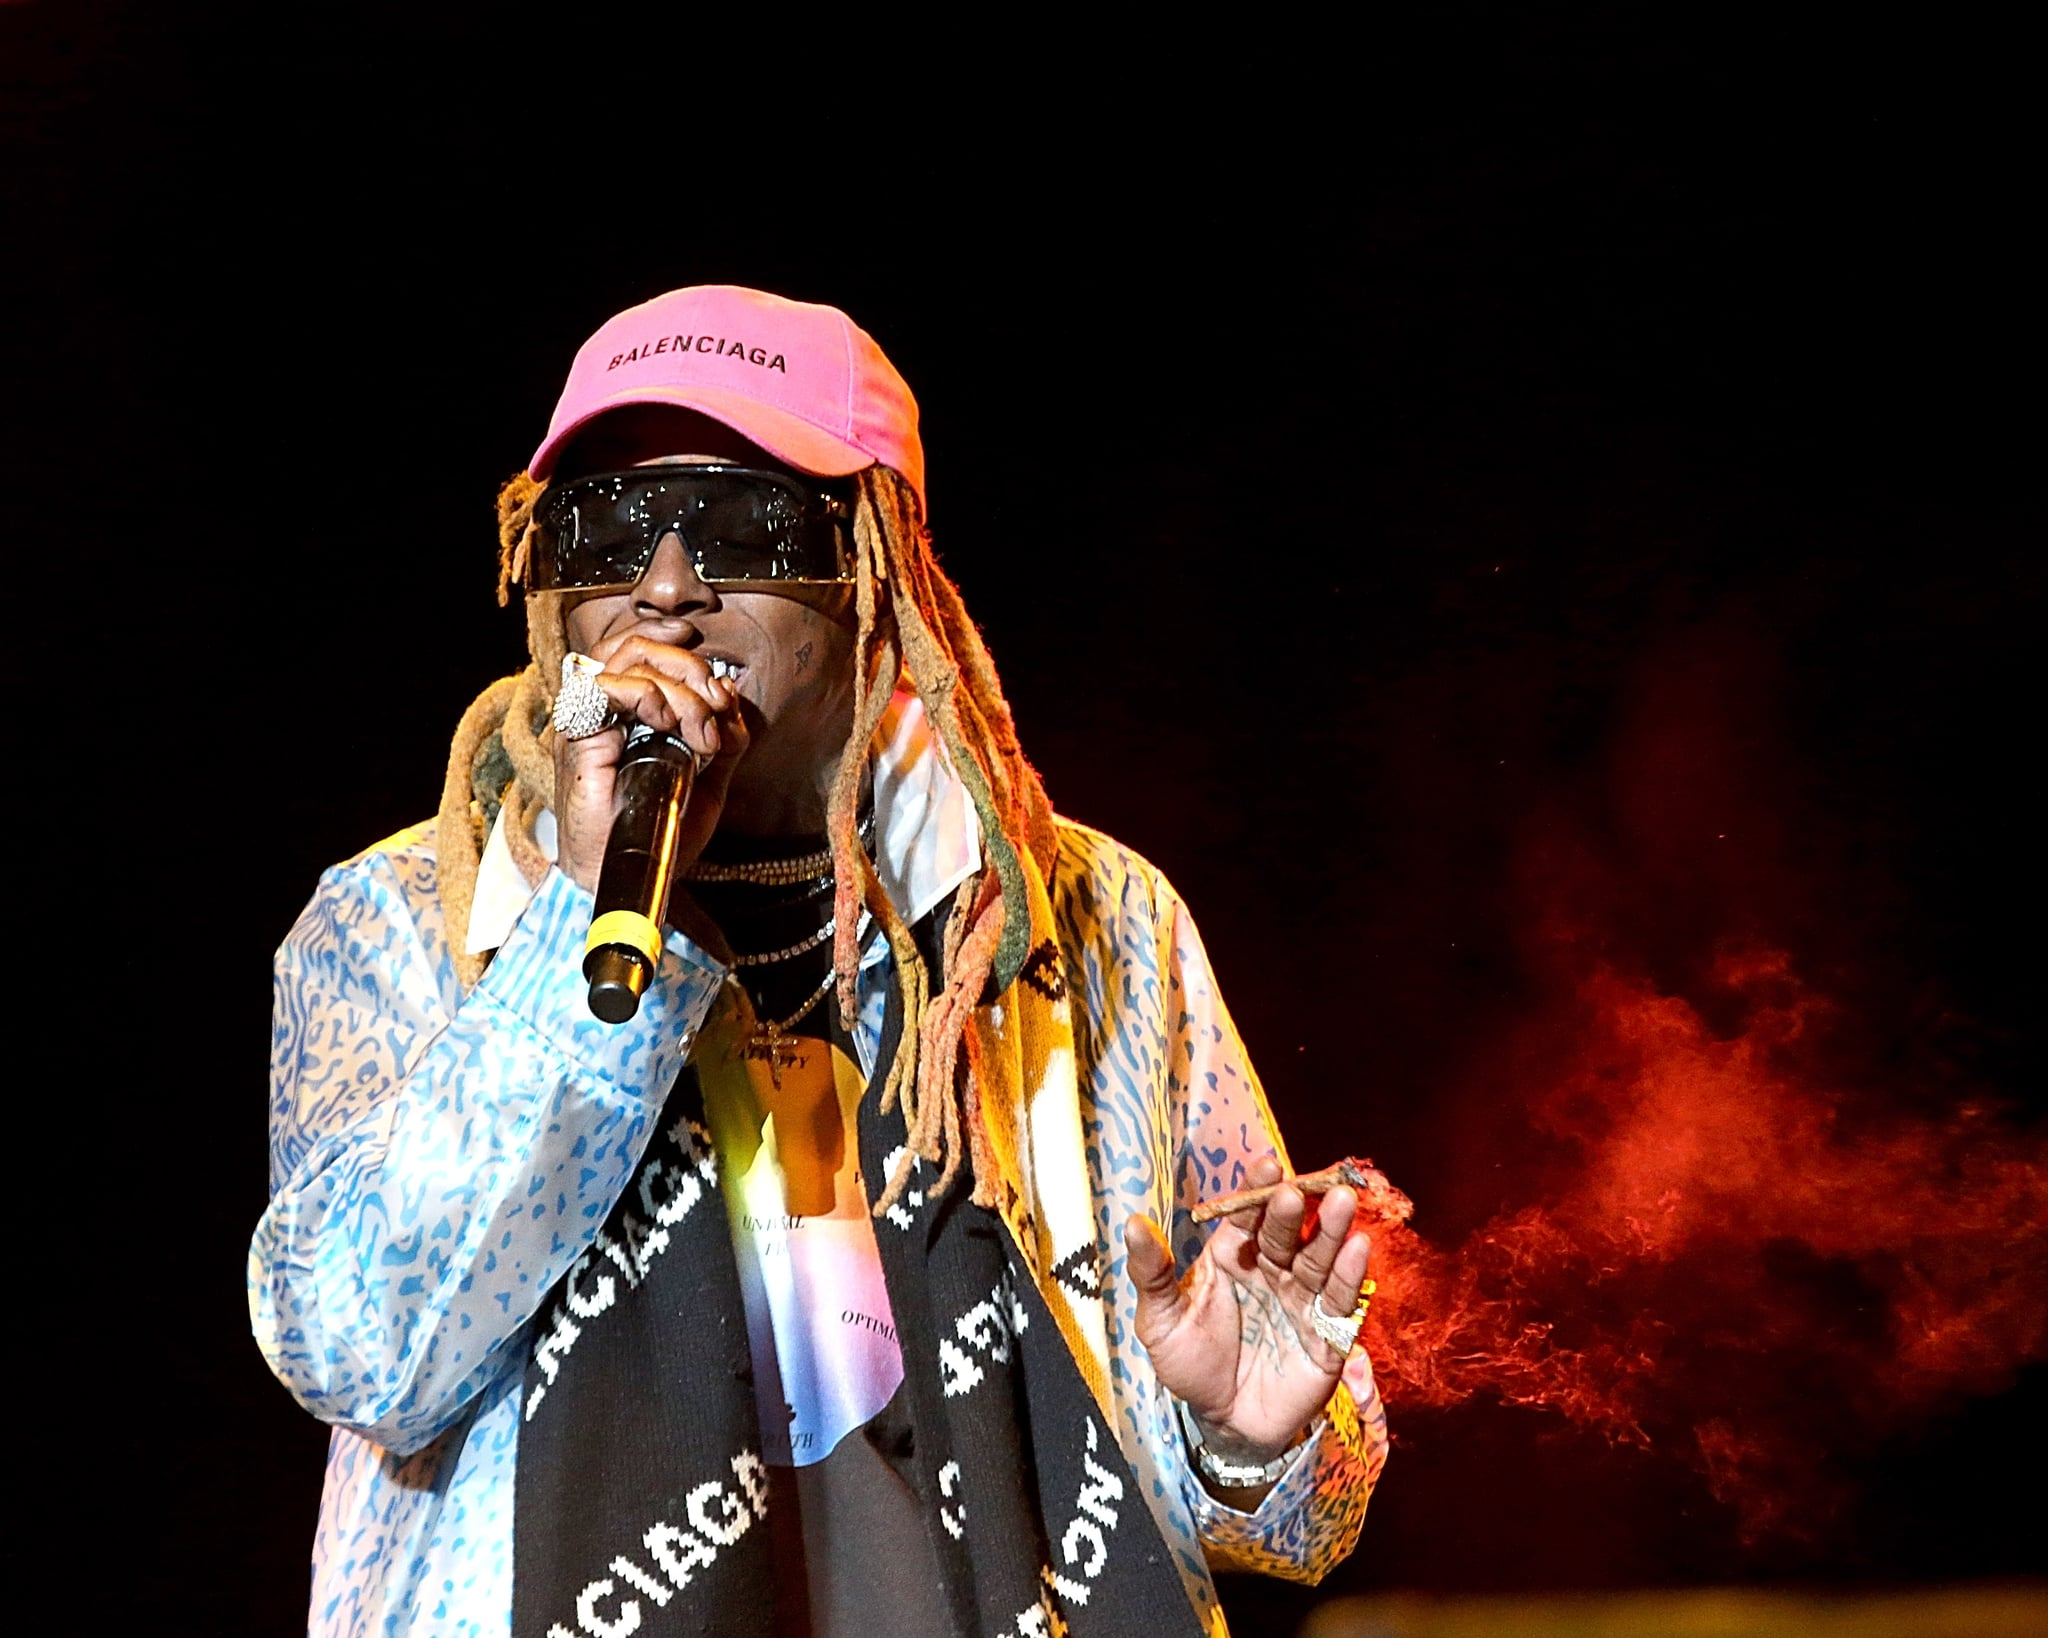 HOUSTON, TEXAS - NOVEMBER 17:  Lil Wayne performs in concert during the inaugural Astroworld Festival at NRG Park on November 17, 2018 in Houston, Texas.  (Photo by Gary Miller/Getty Images)